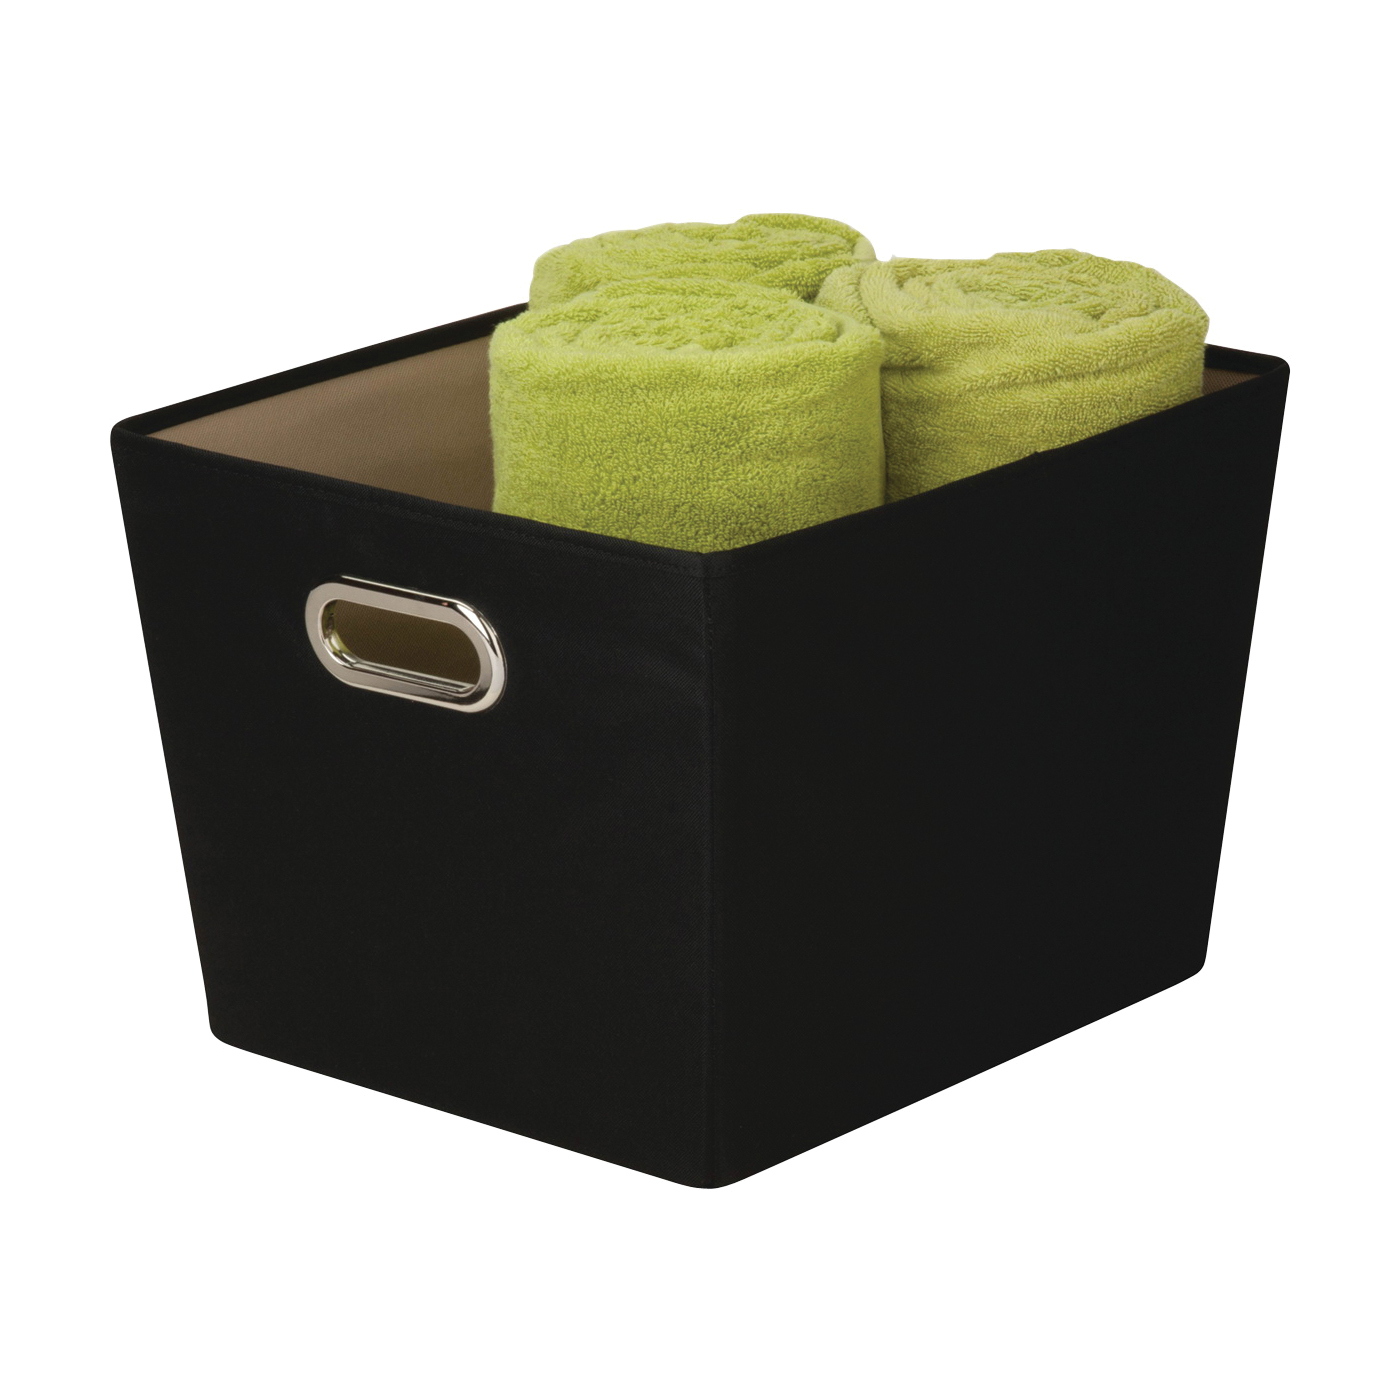 Picture of Honey-Can-Do SFT-03072 Storage Bin with Handle, Polyester, Black, 15-3/4 in L, 13 in W, 10.8 in H